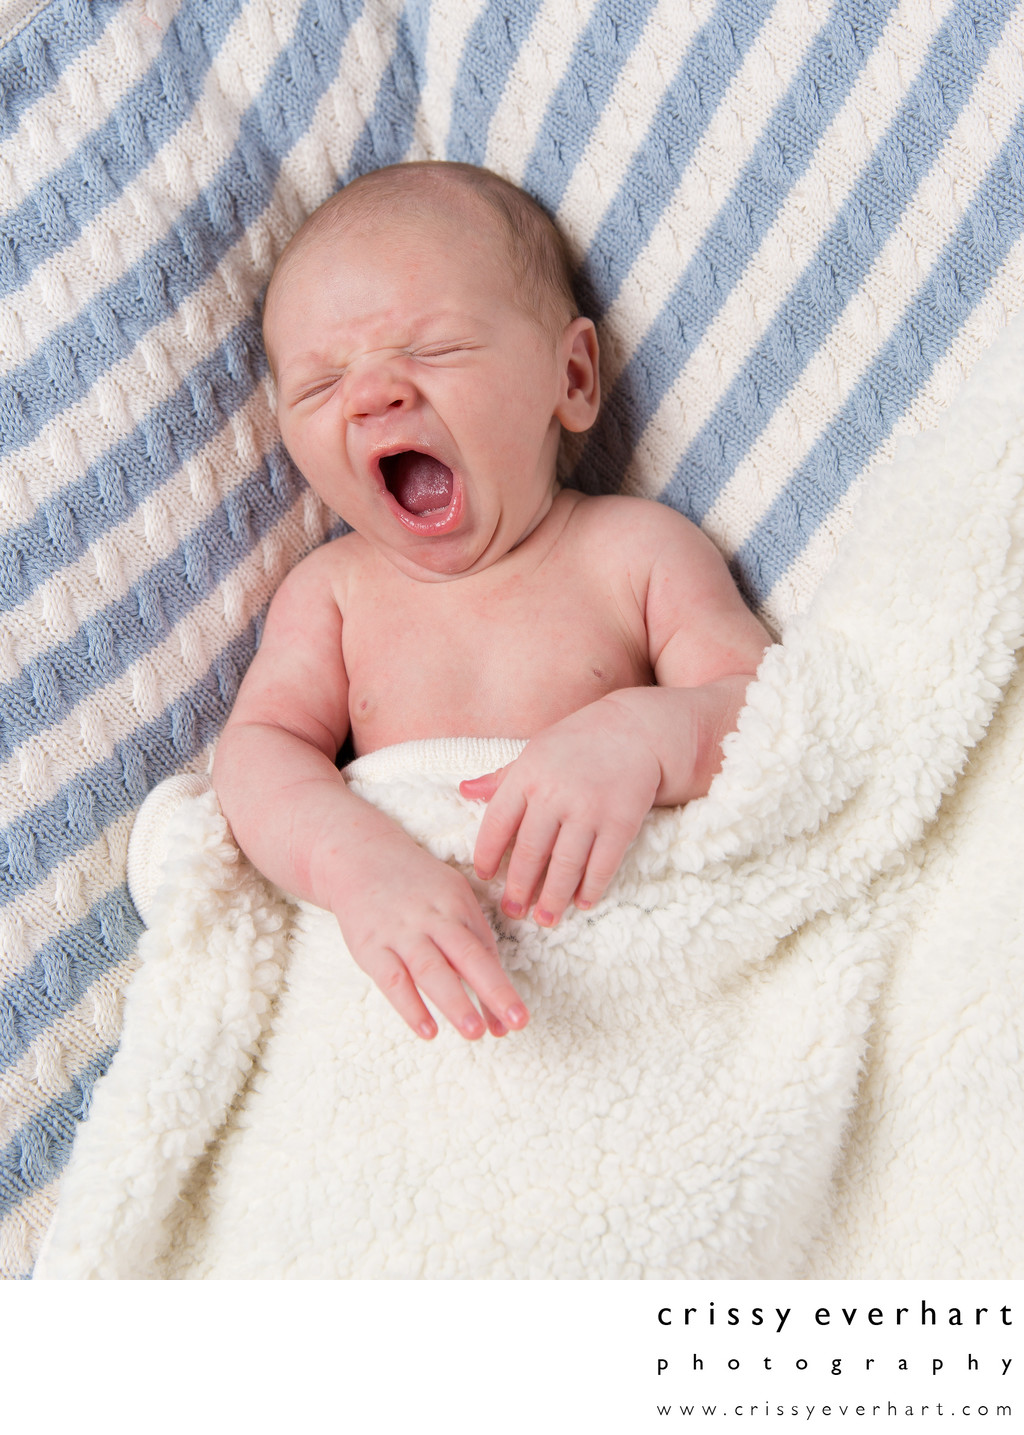 Yawning Newborn - Infant Boy